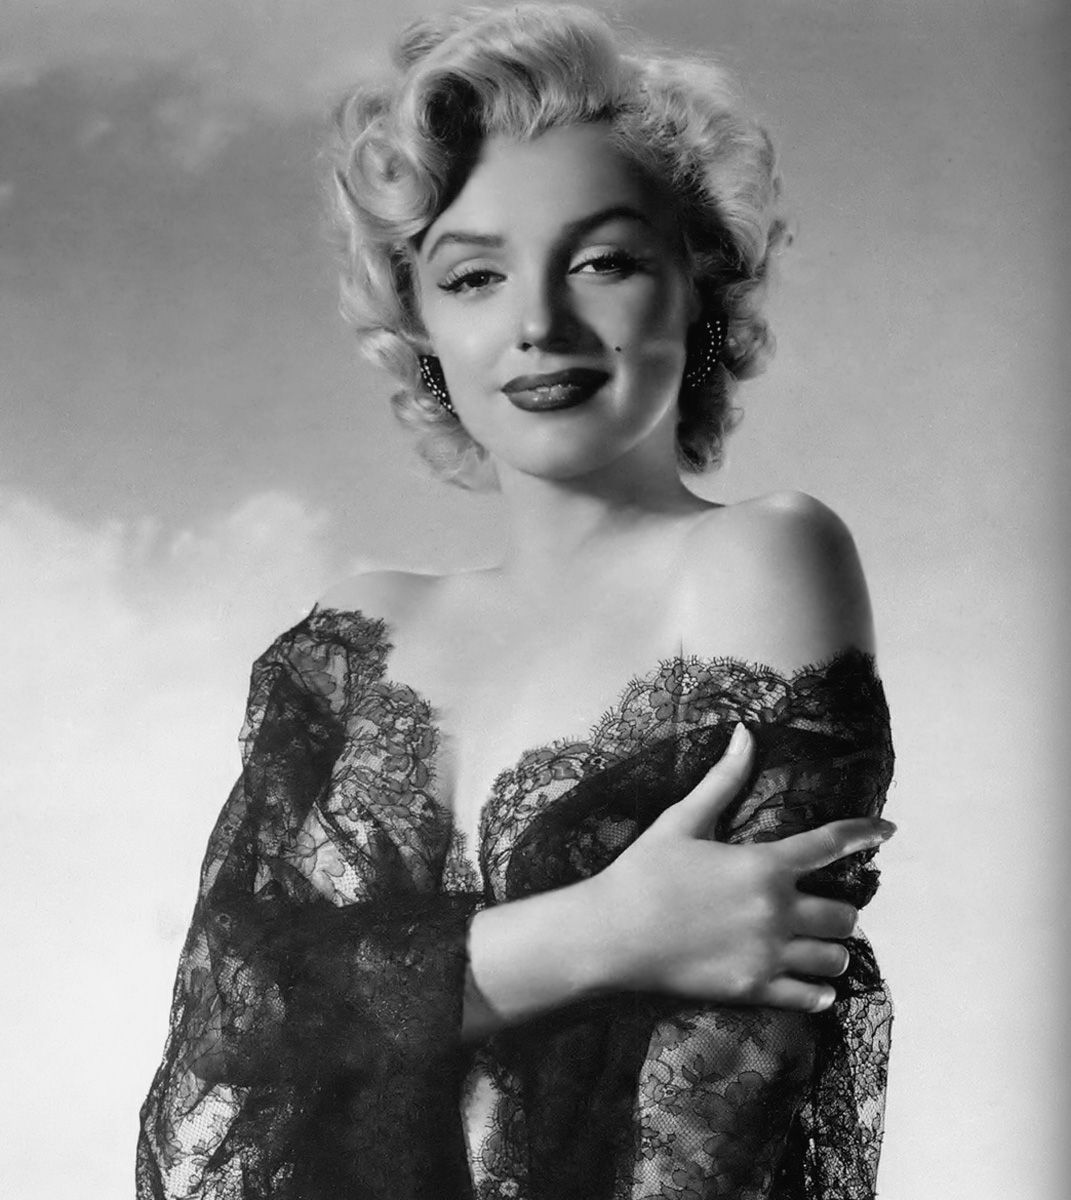 Marilyn Monroe Pin Up | The PinUp Art: Marilyn Monroe, high ...